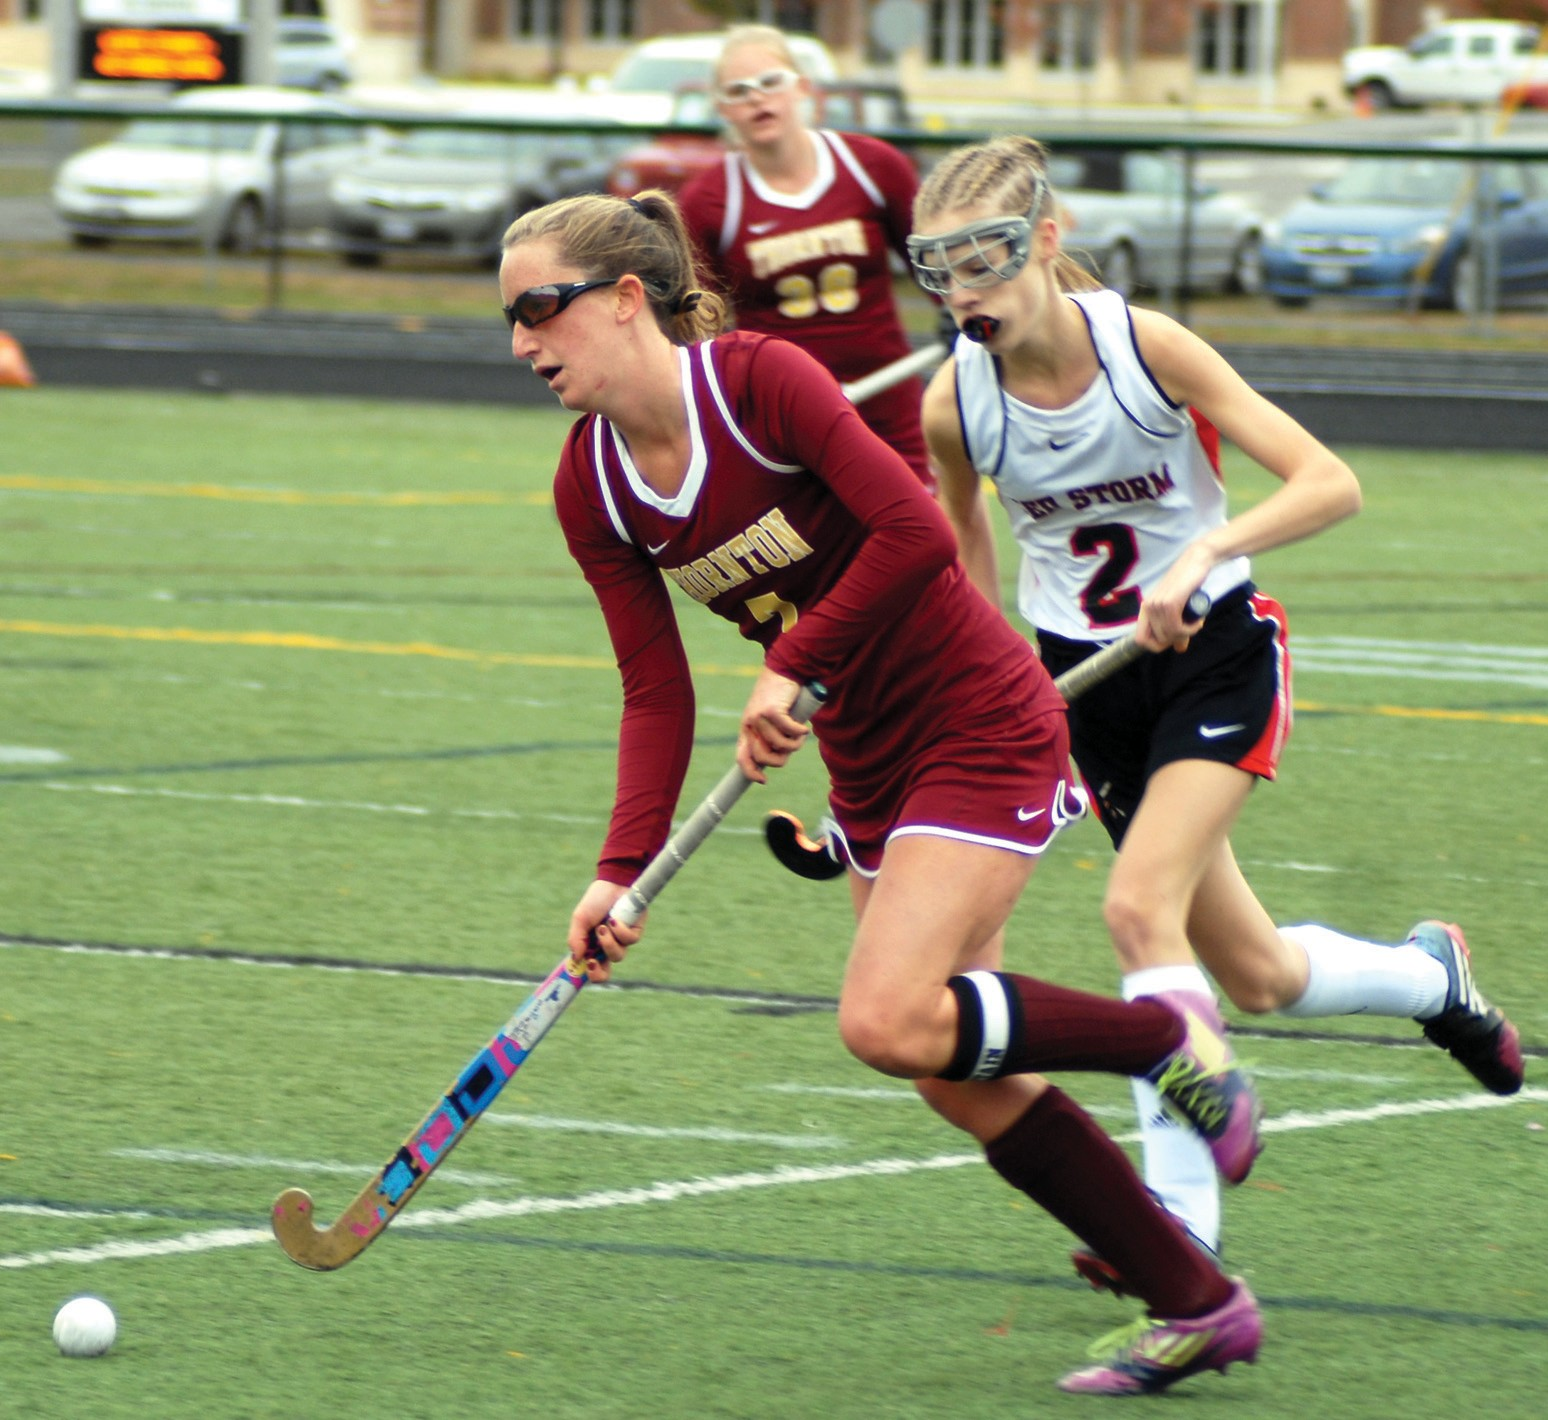 Thornton Academy senior Grace Pickering has been named the Journal Tribune Field Hockey Most Valuable Player for the 2015 season.